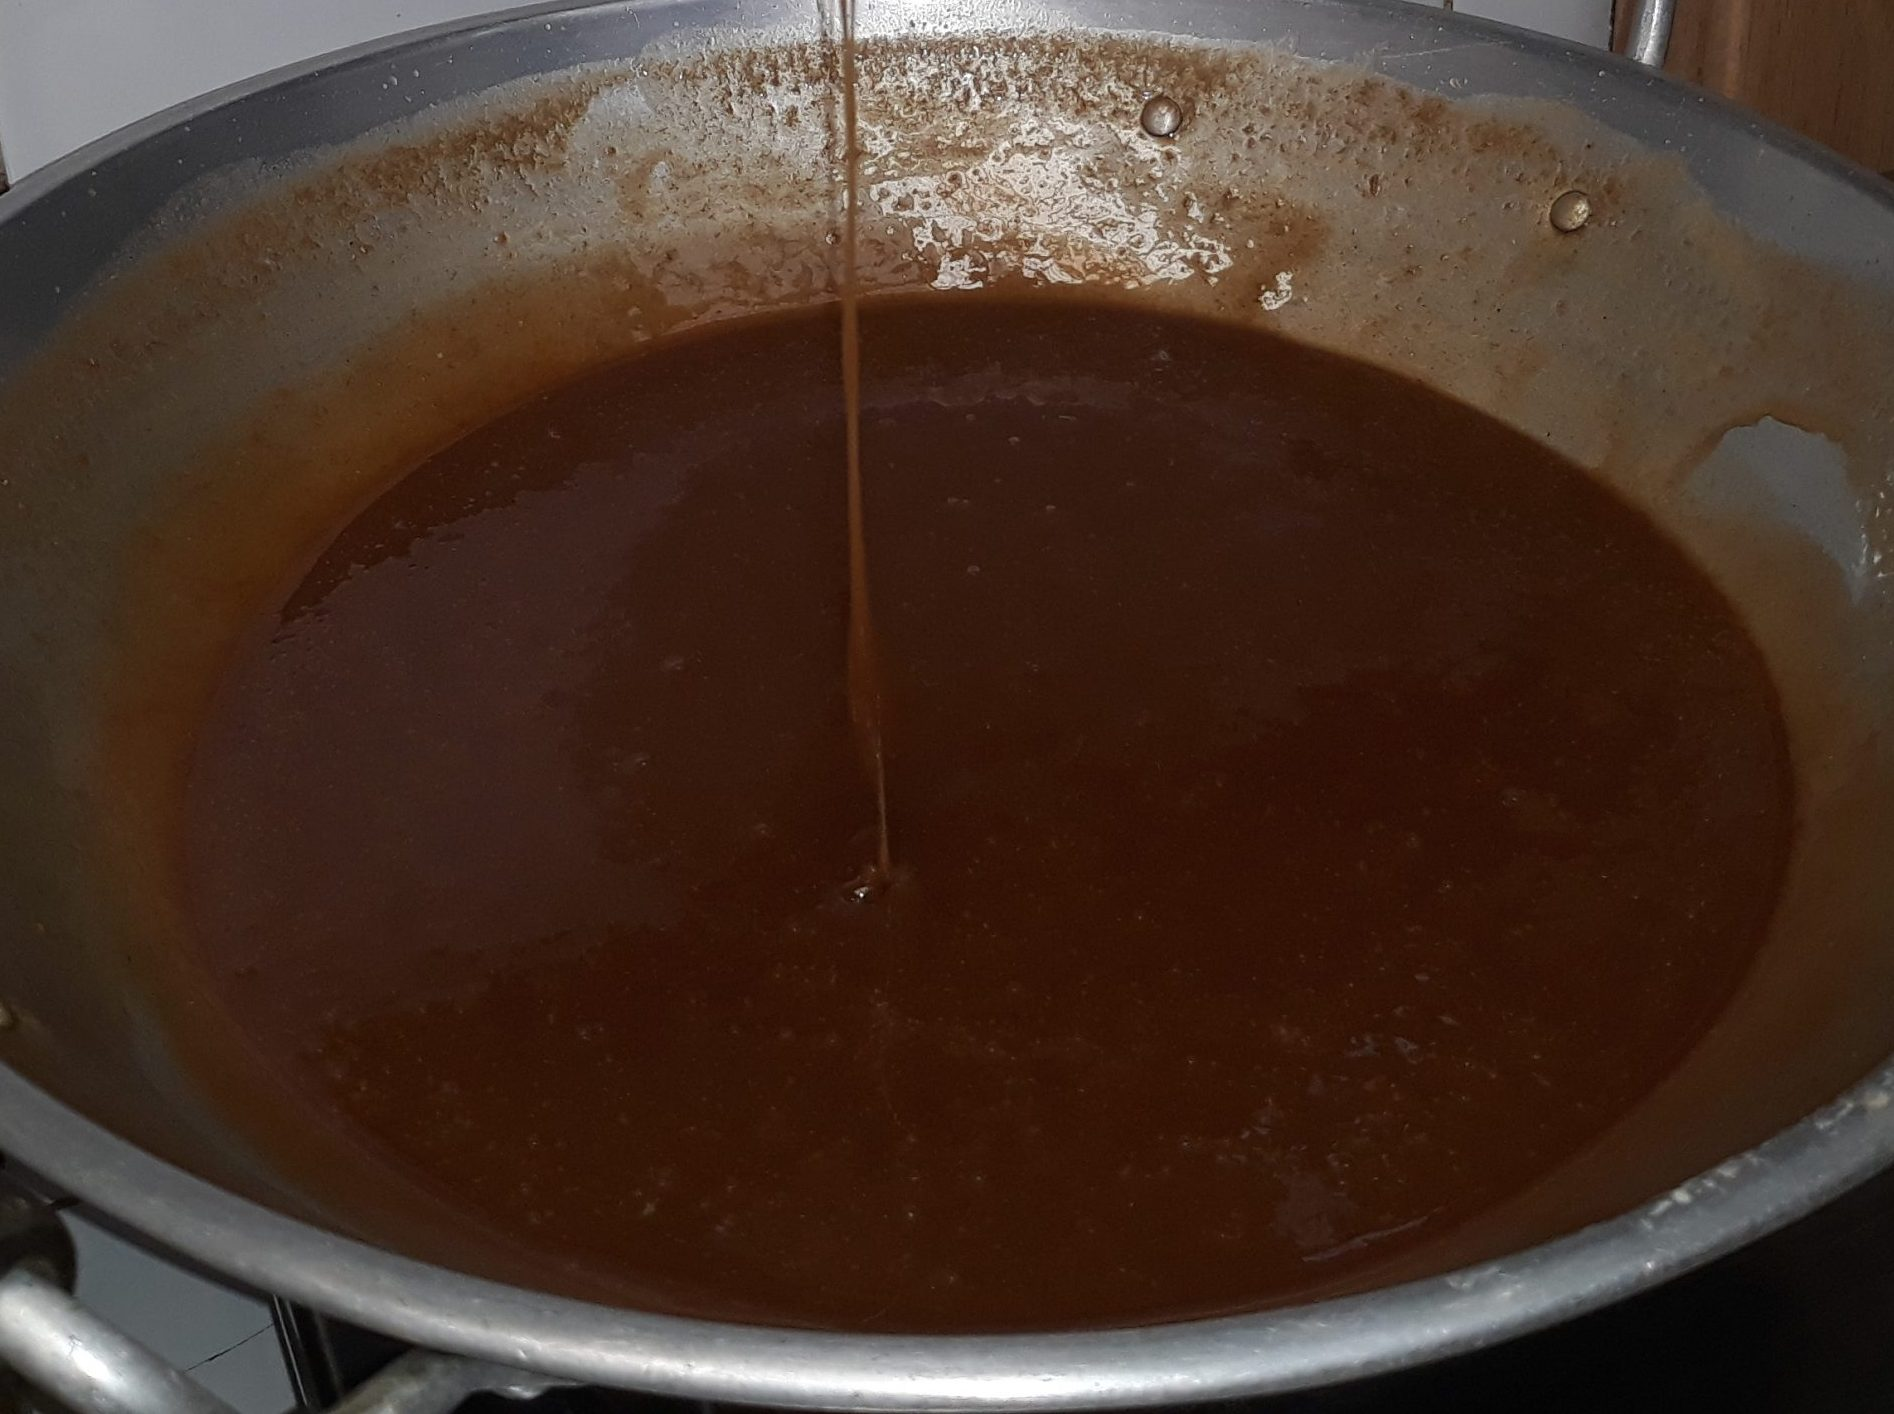 Mixing the freshly squeezed coconut milk and brown sugar until it thickens.